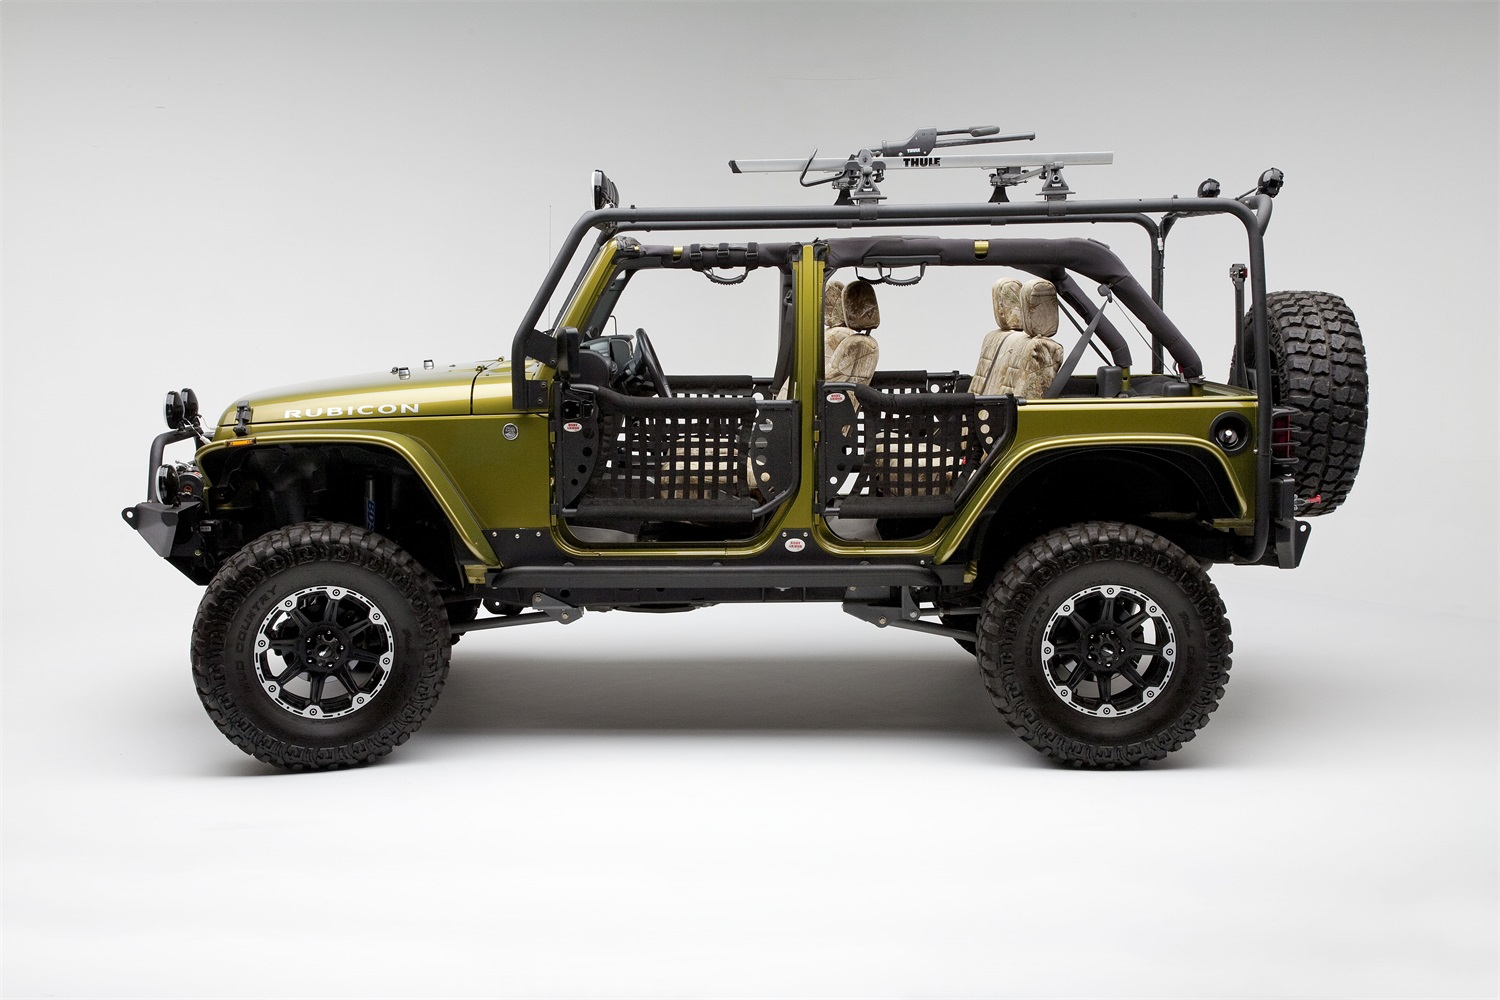 Jeep Jku Roof Rack >> Jeep Jk Roof Rack | Car Interior Design